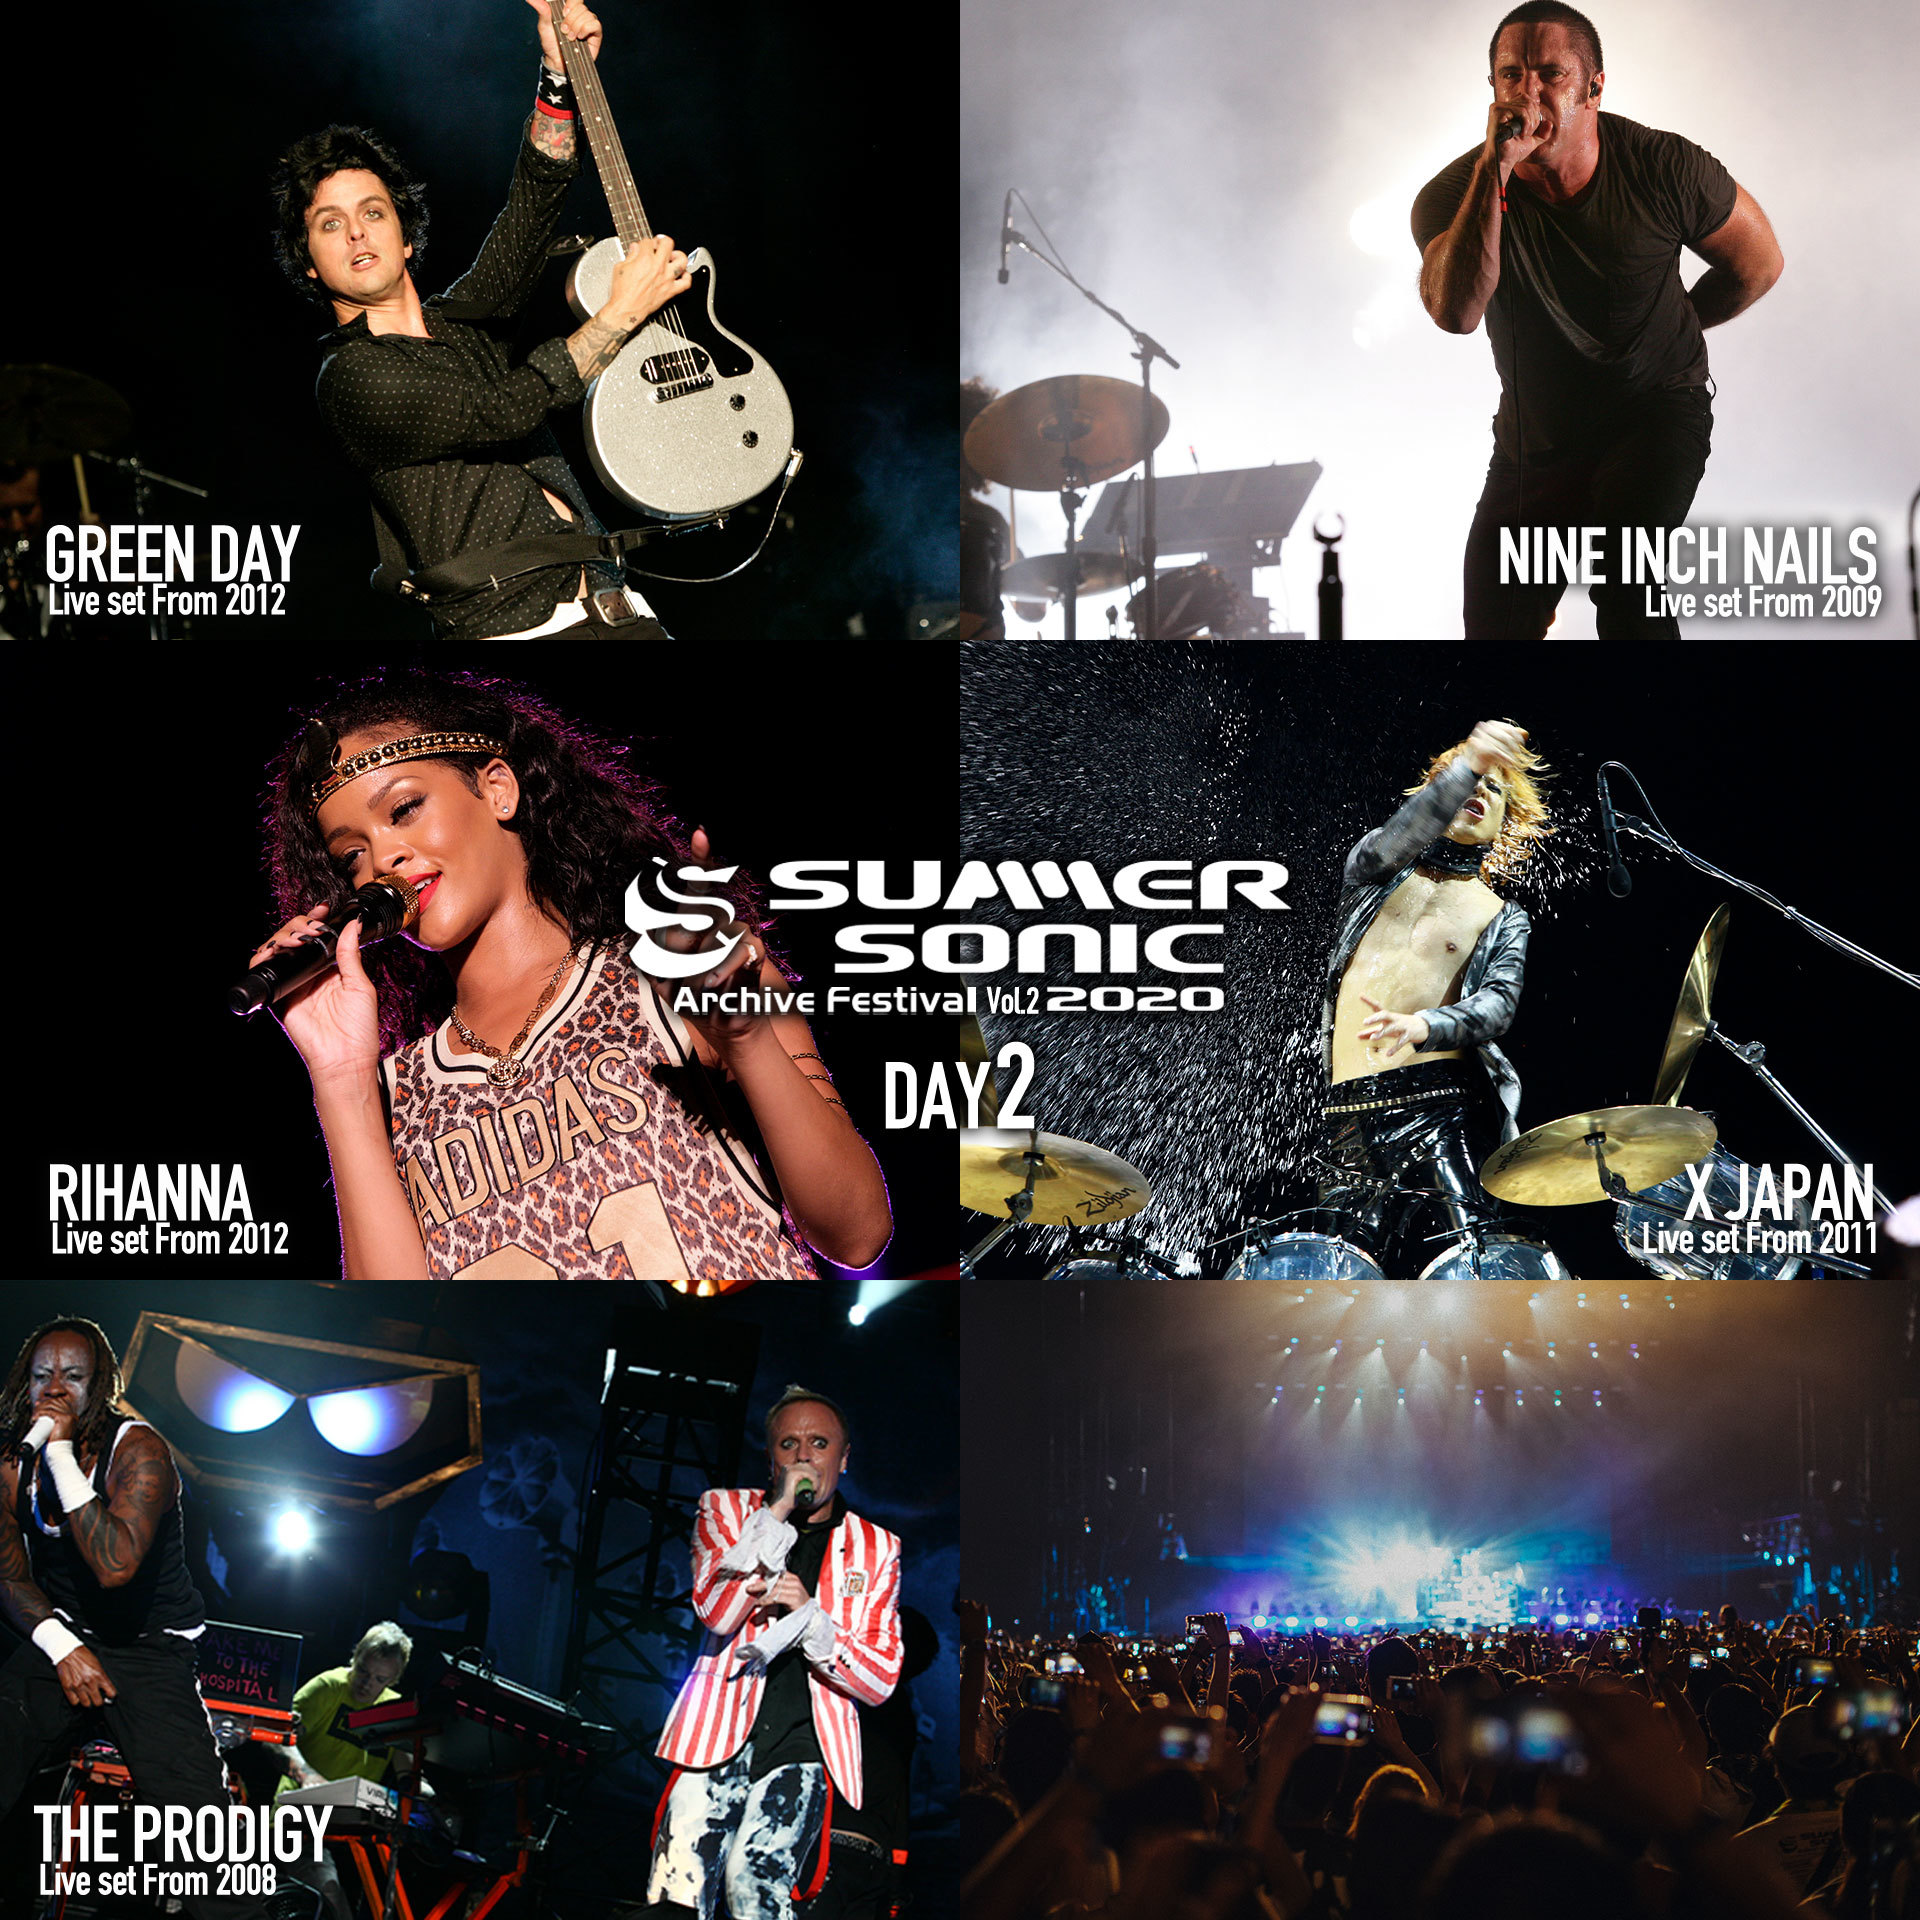 SUMMER SONIC 2020 ARCHIVE FESTIVAL-vol.2- Day2